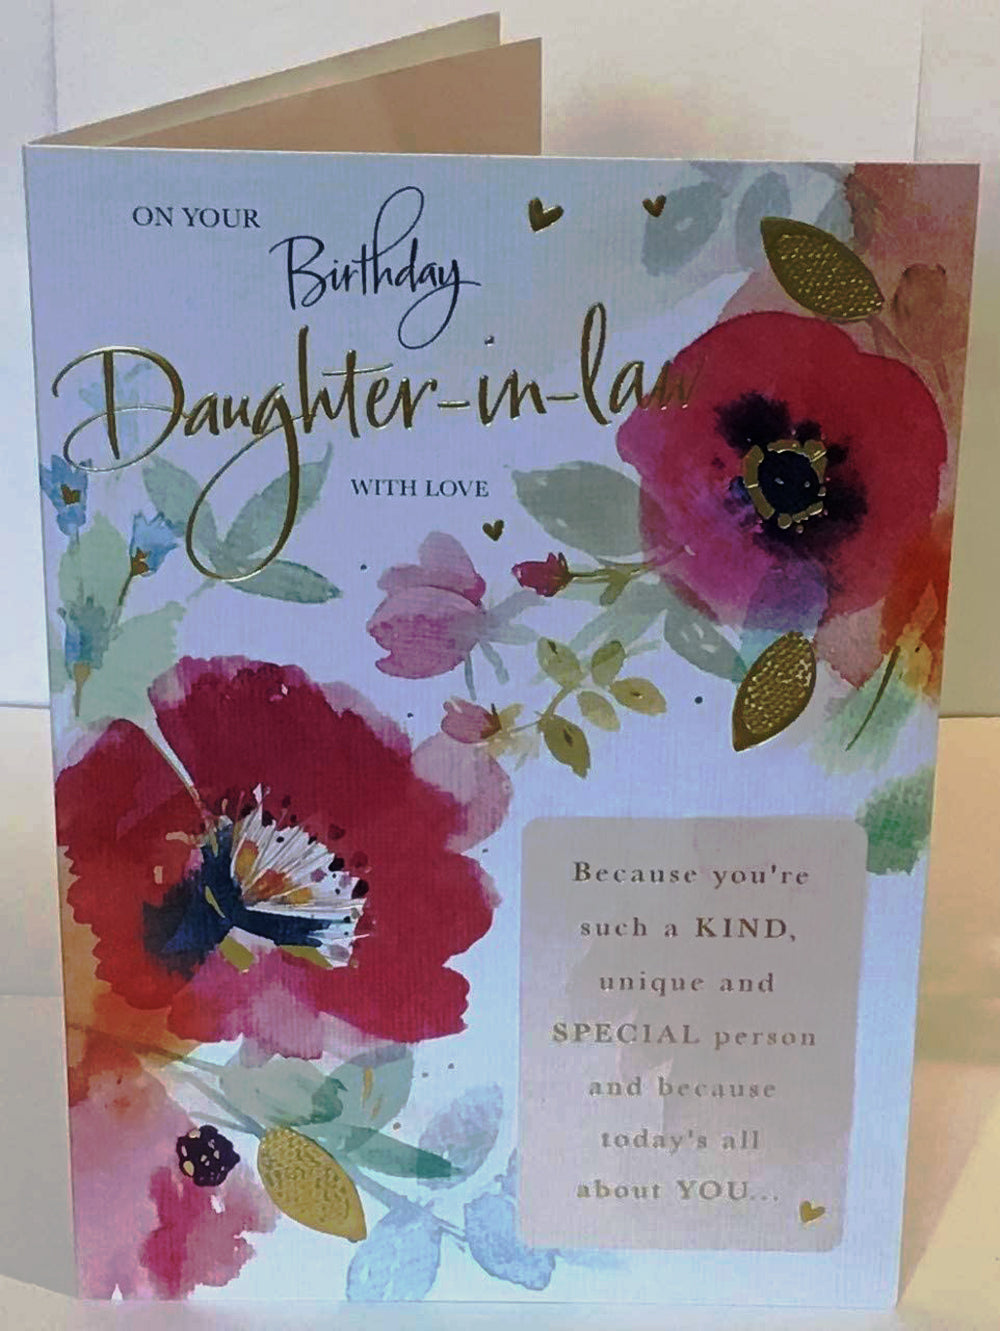 Daughter-in-Law Birthday Card